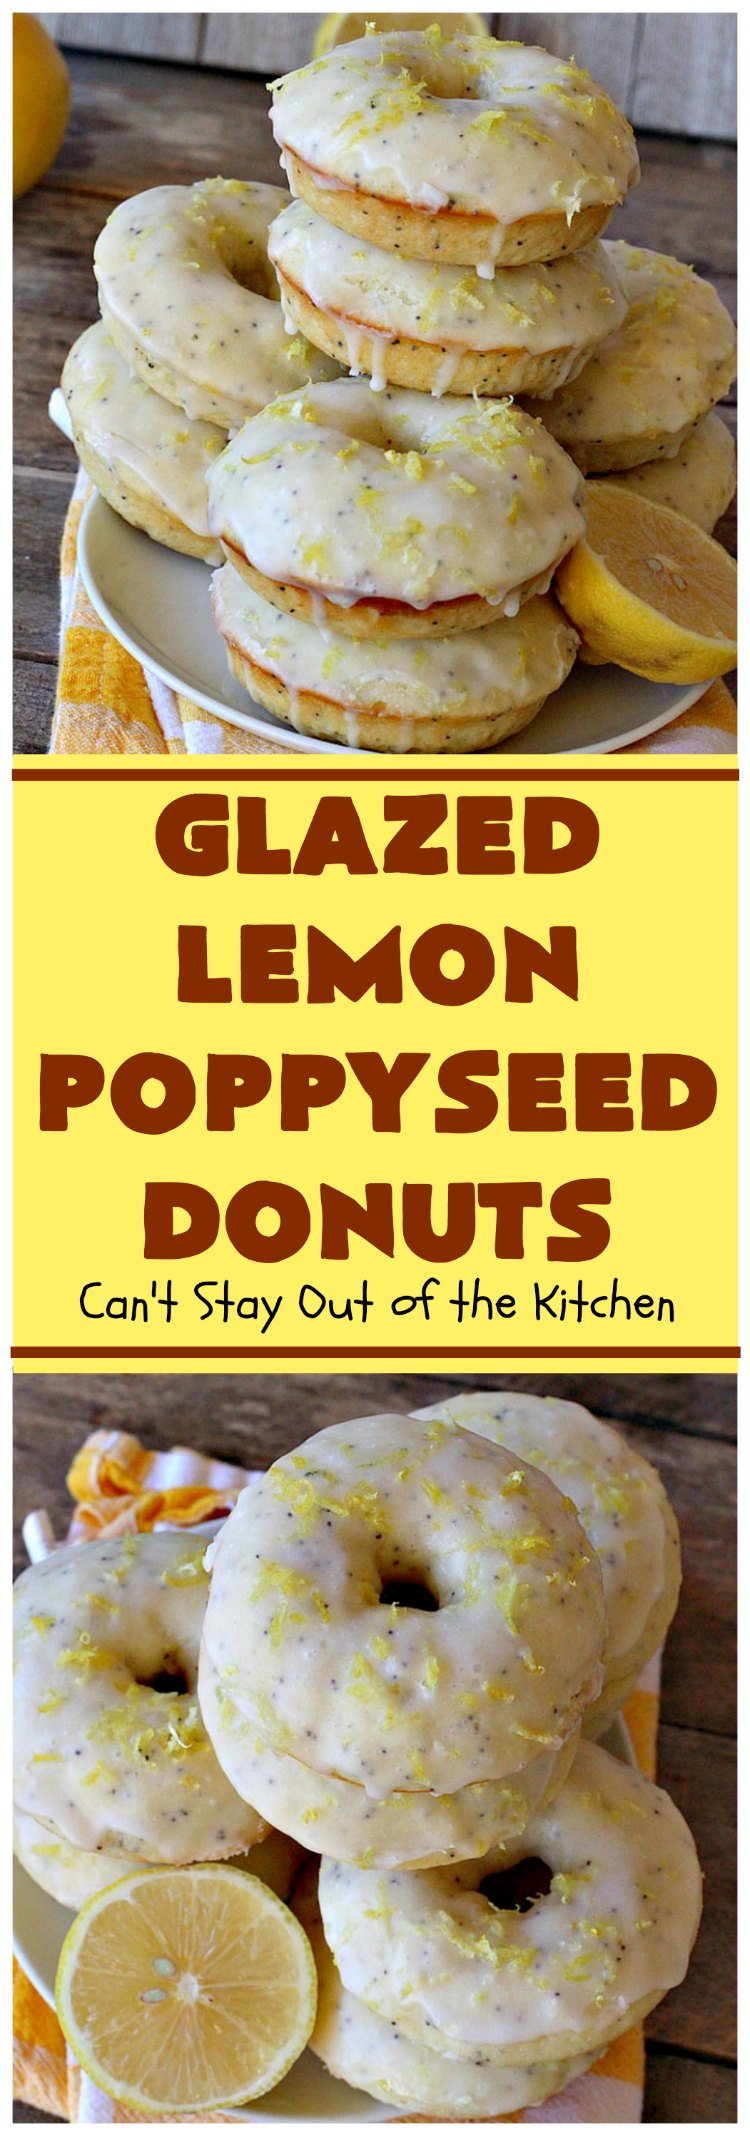 Glazed Lemon Poppyseed Donuts   Can't Stay Out of the Kitchen